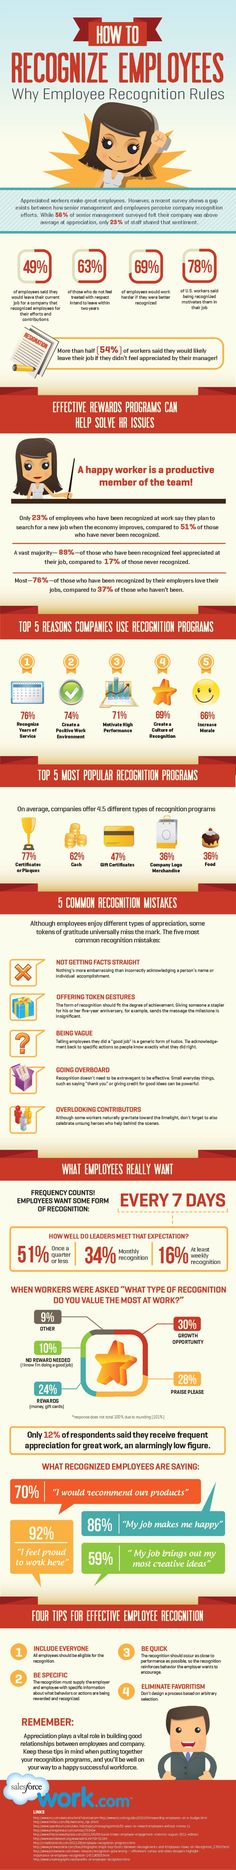 How-to-Recognize-Employees-Infographic